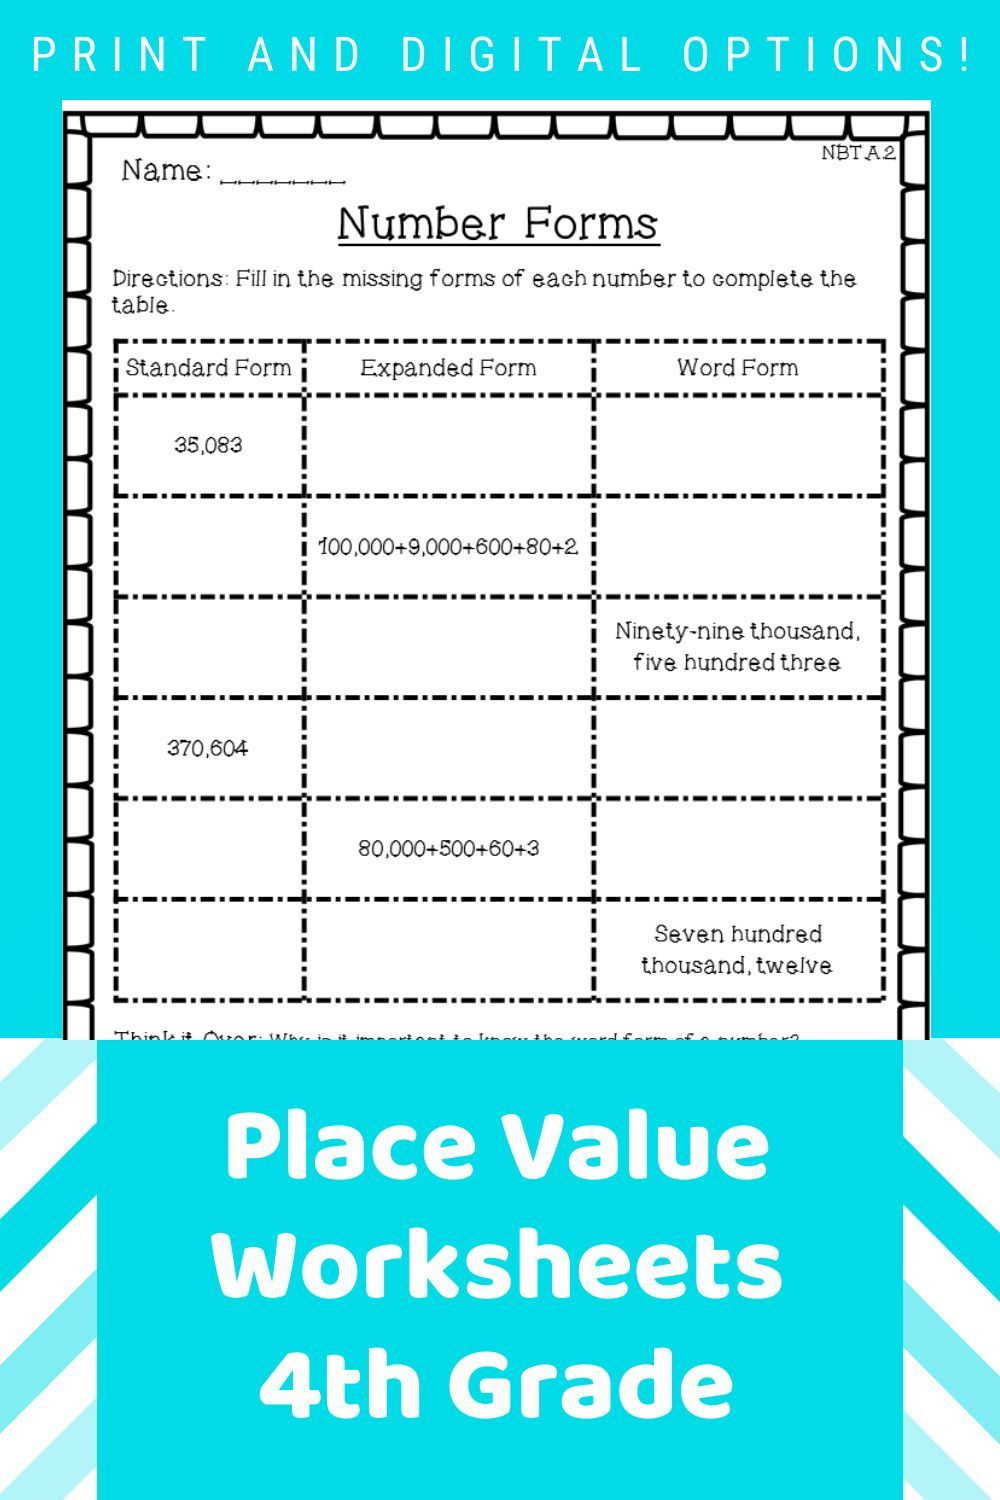 medium resolution of 4th Grade Place Value Worksheets ~ Distance Learning Digital Option   Place  value worksheets